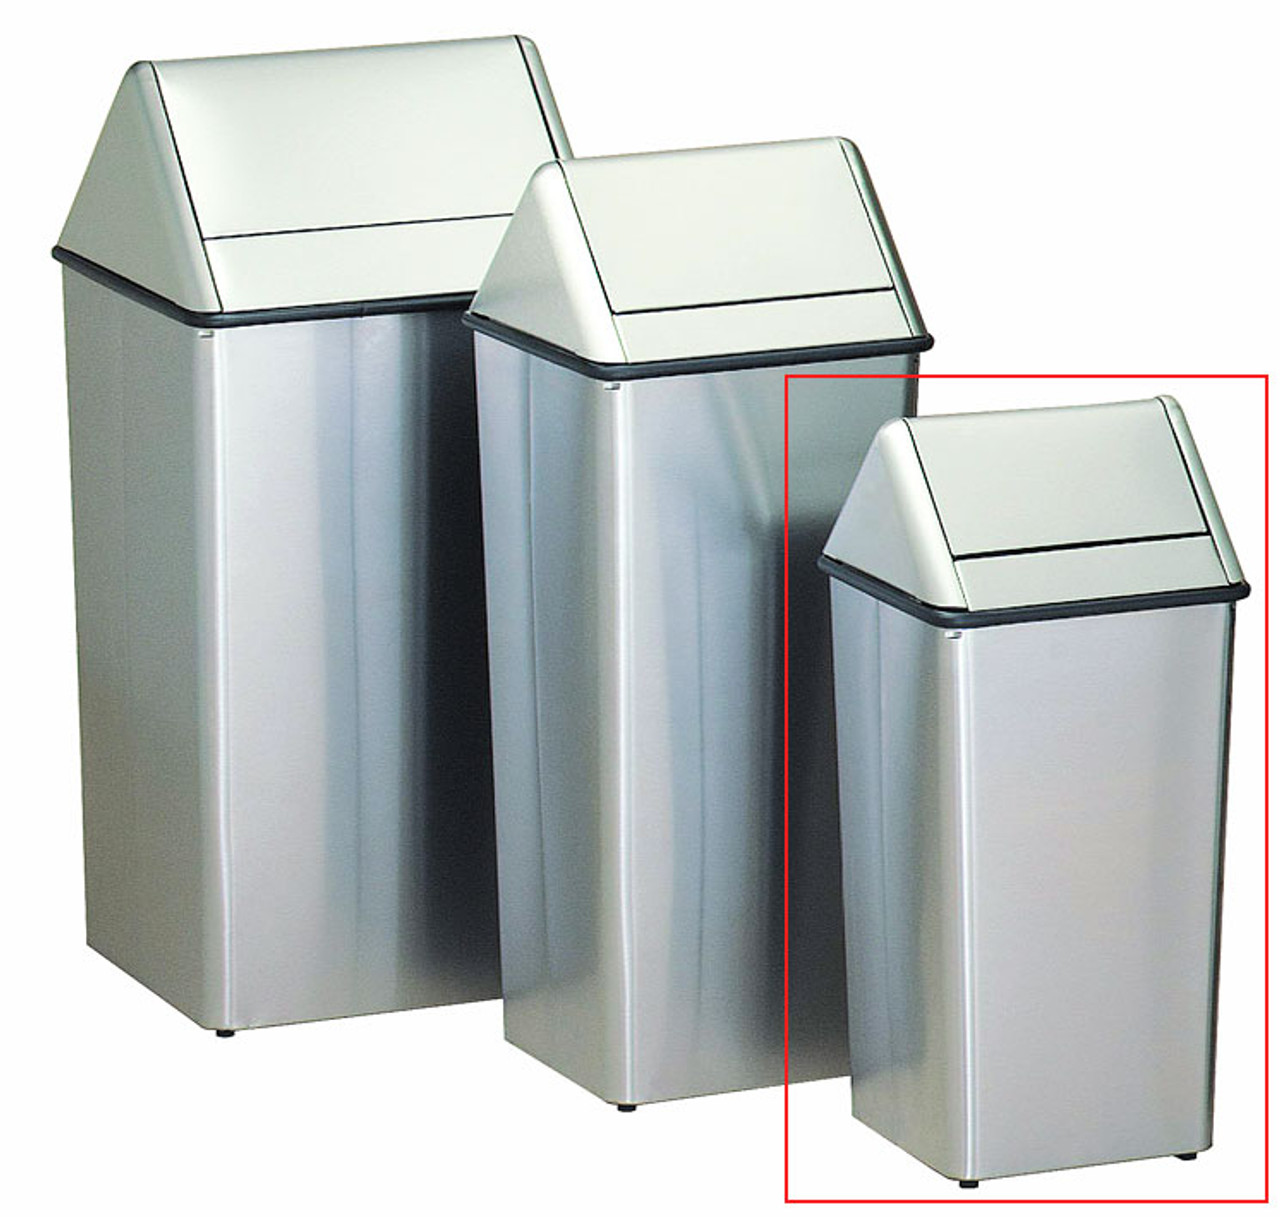 Metal Stainless Steel 13 Gallon Swing Top Waste Receptacle 1311HTSS